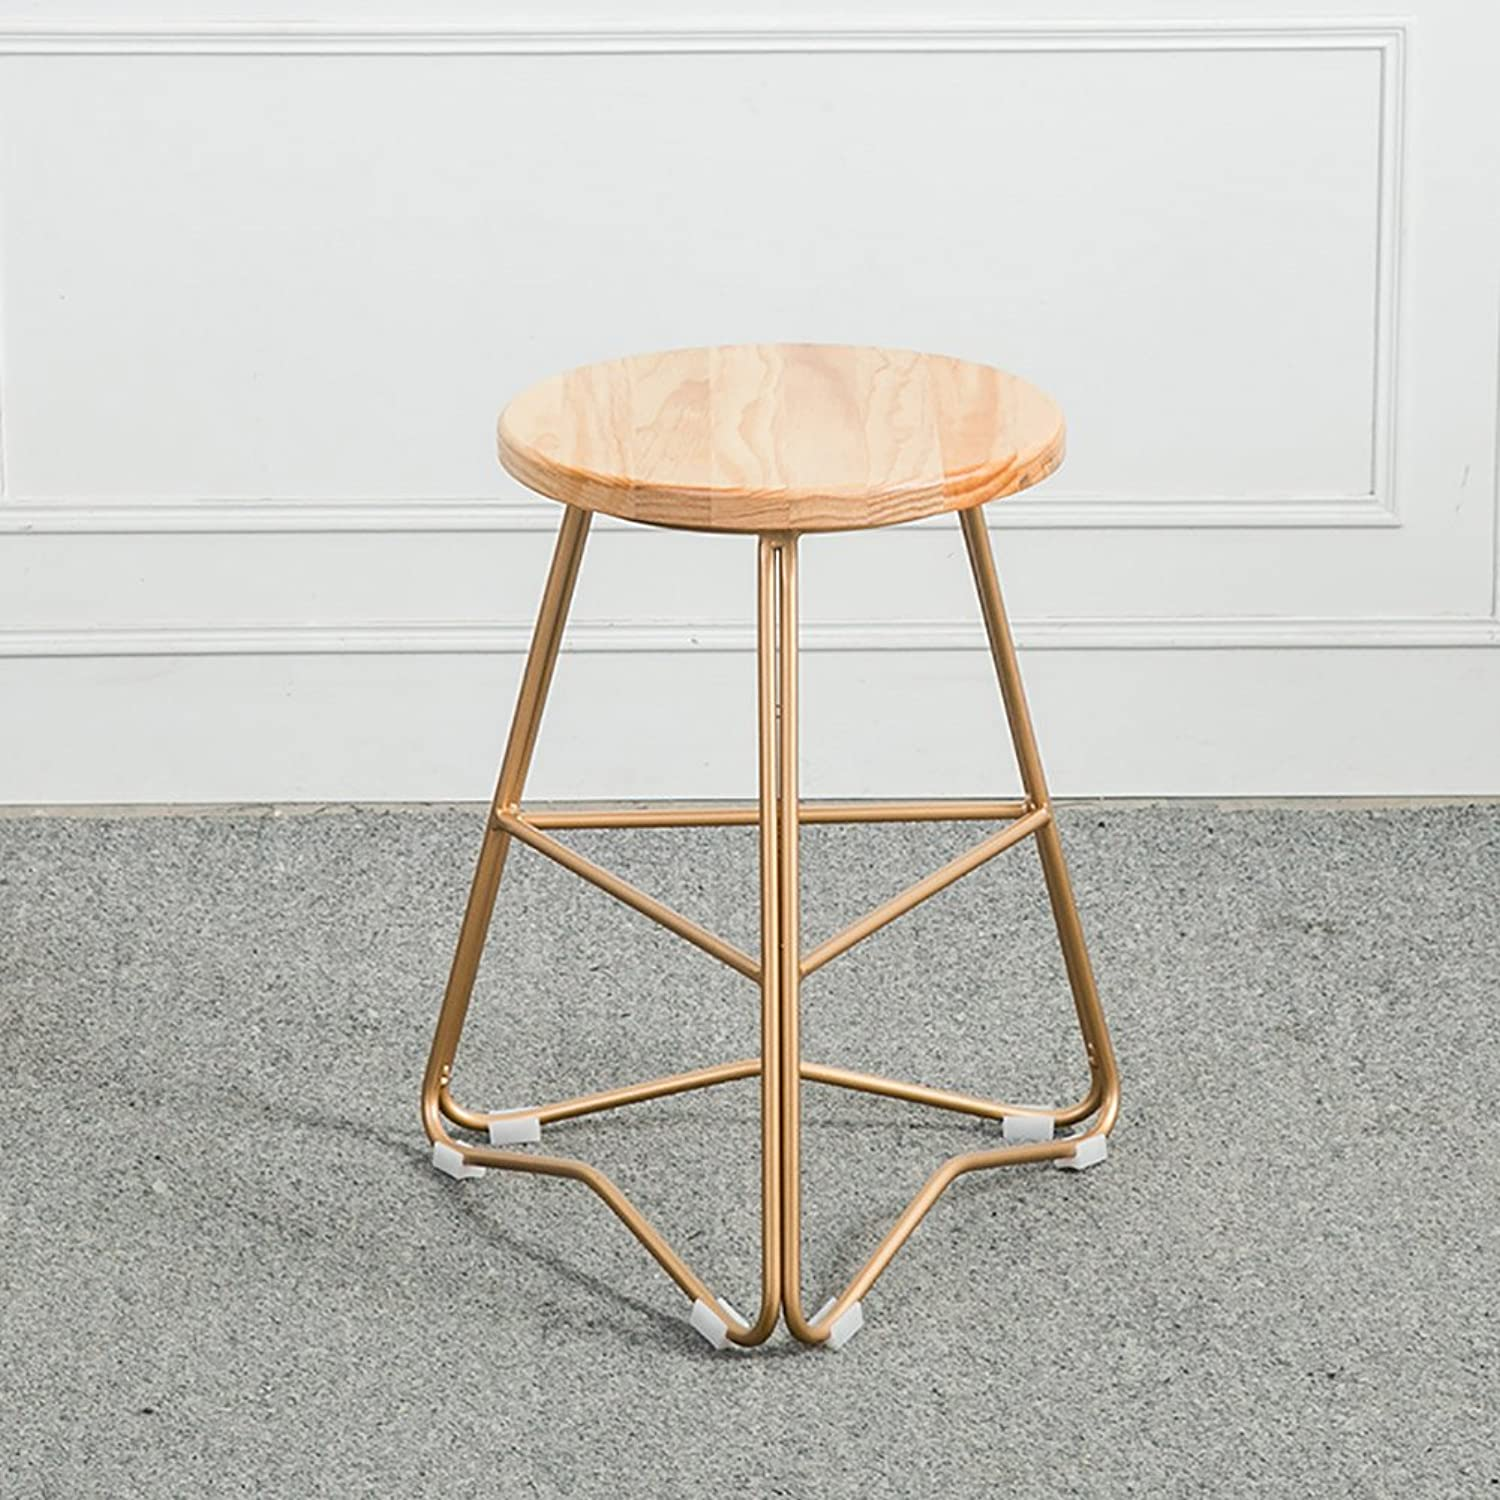 Rustic Designer Kitchen Pub Metal Bar Stool Industrial Wooden Top-Solid Nordic Wood (color   4, Size   65CM)